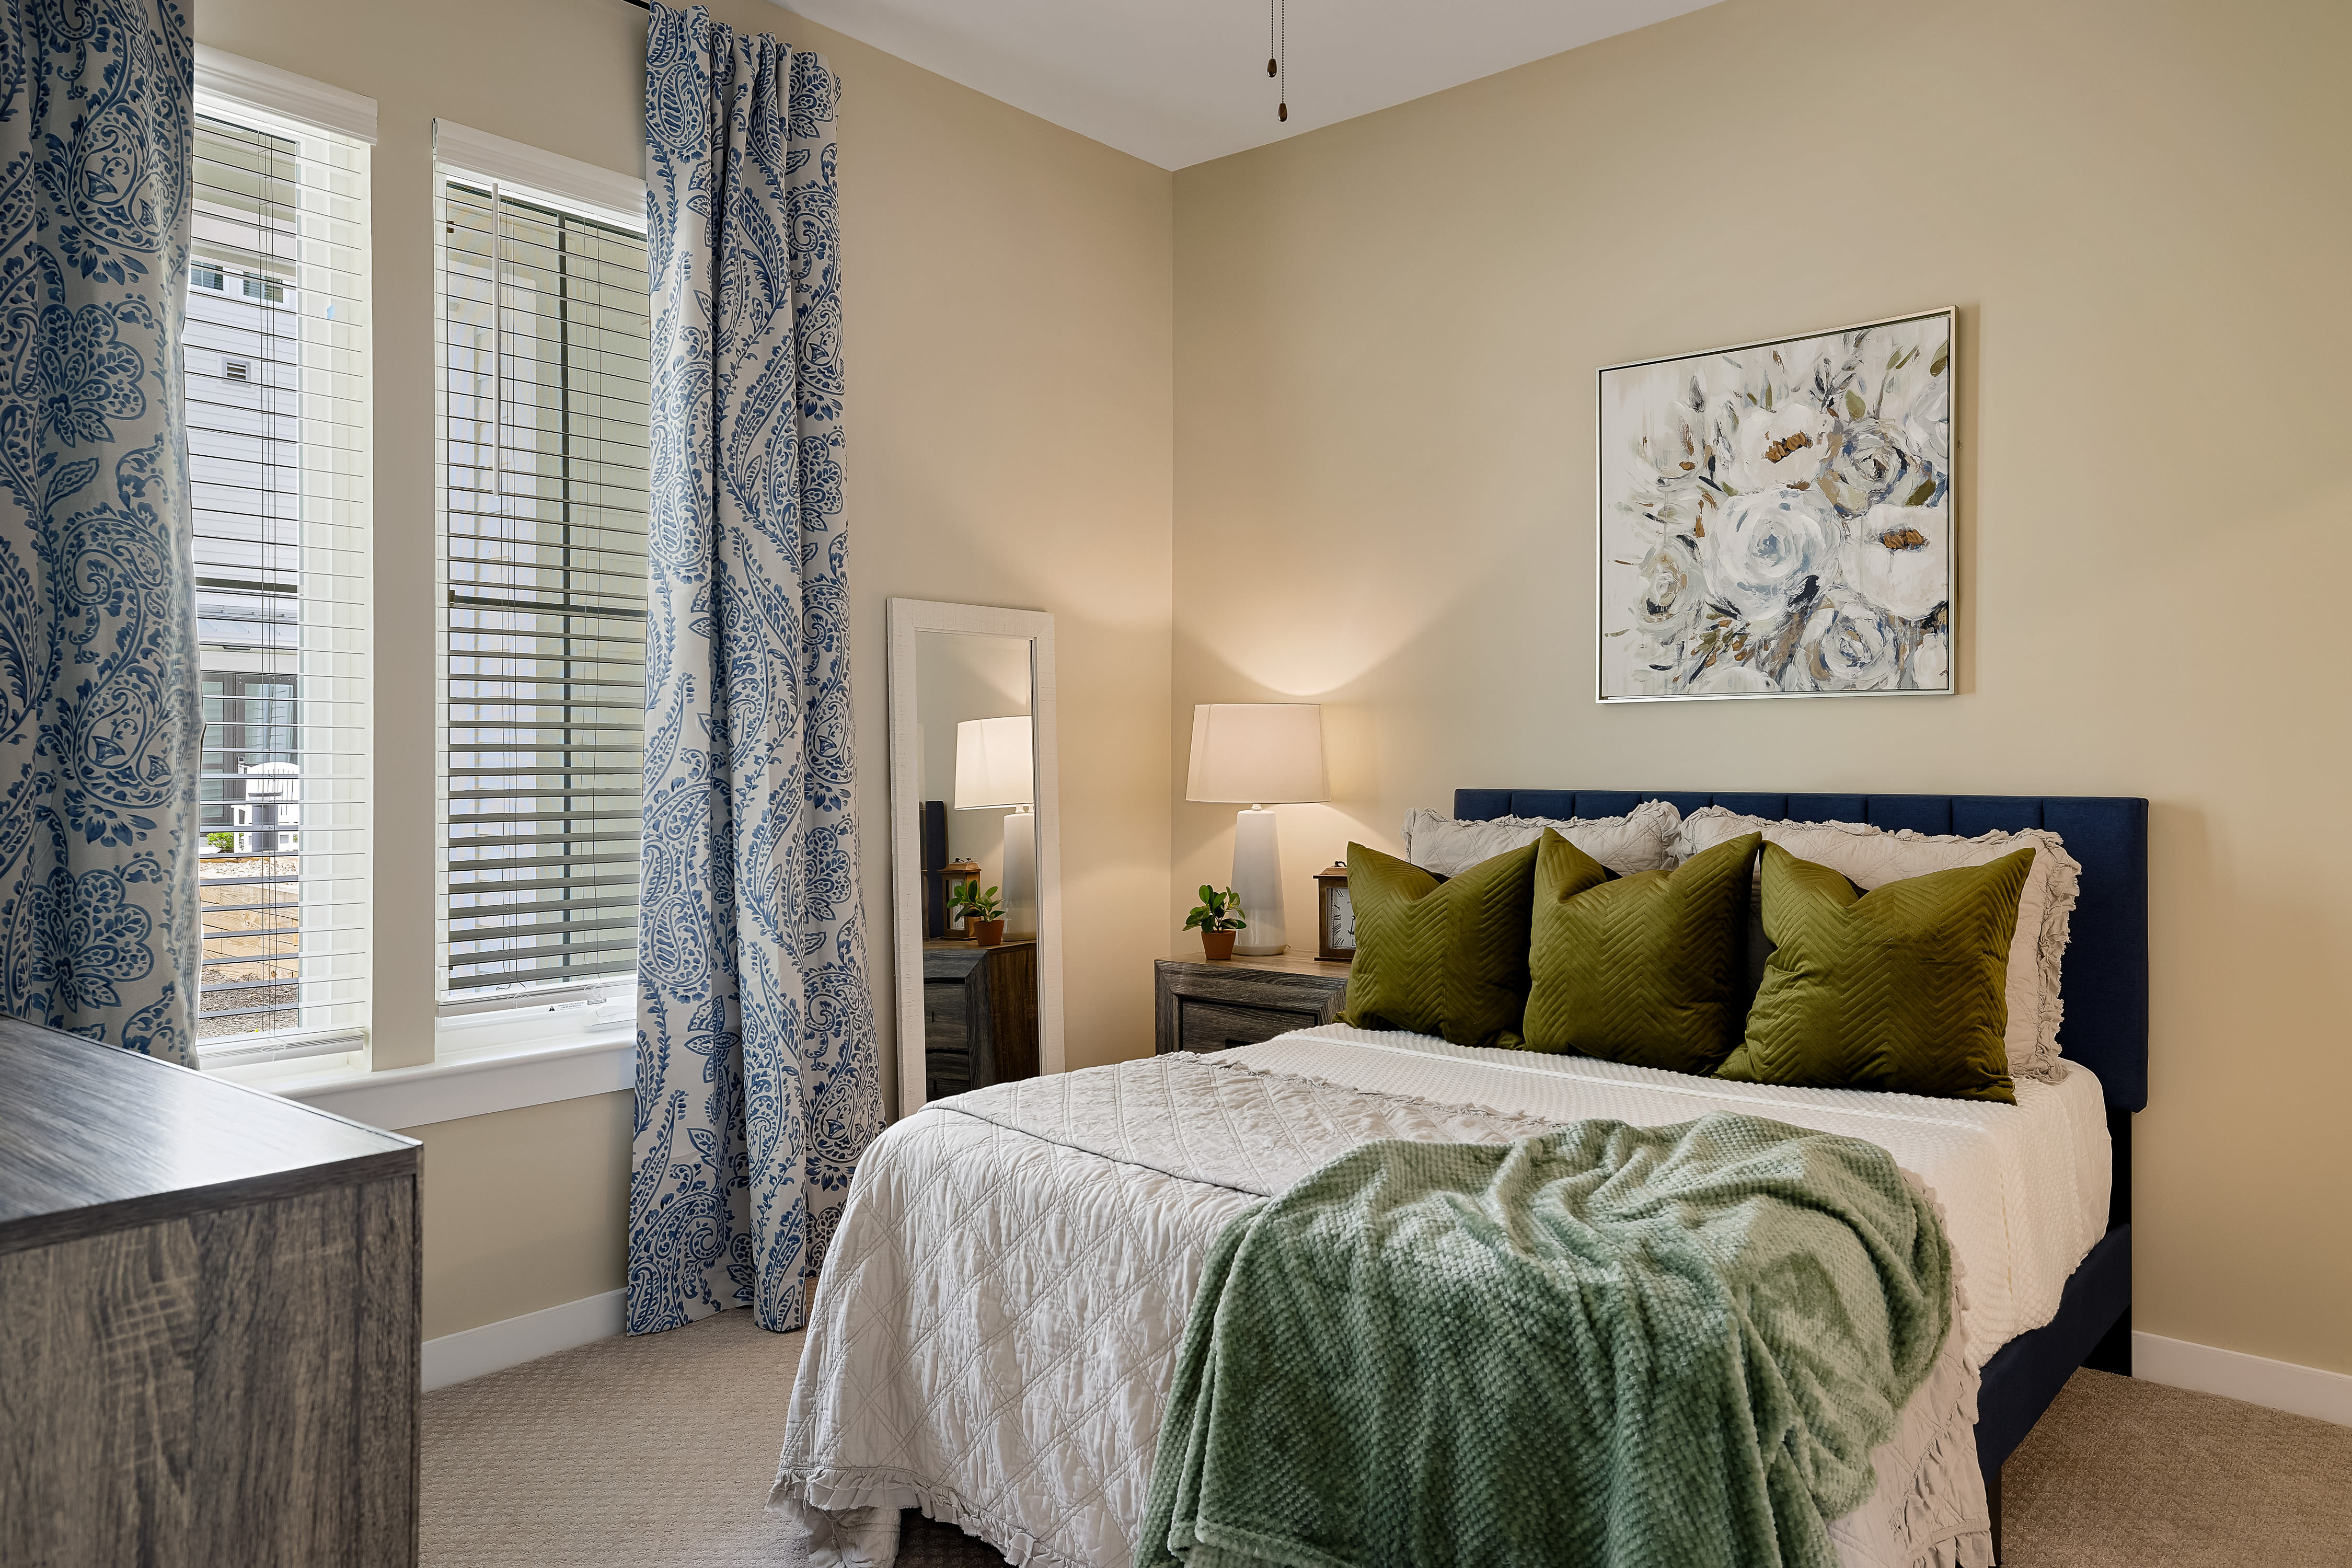 Relaxing bedroom with accented walls at The Claiborne at Newnan Lakes in Newnan, GA